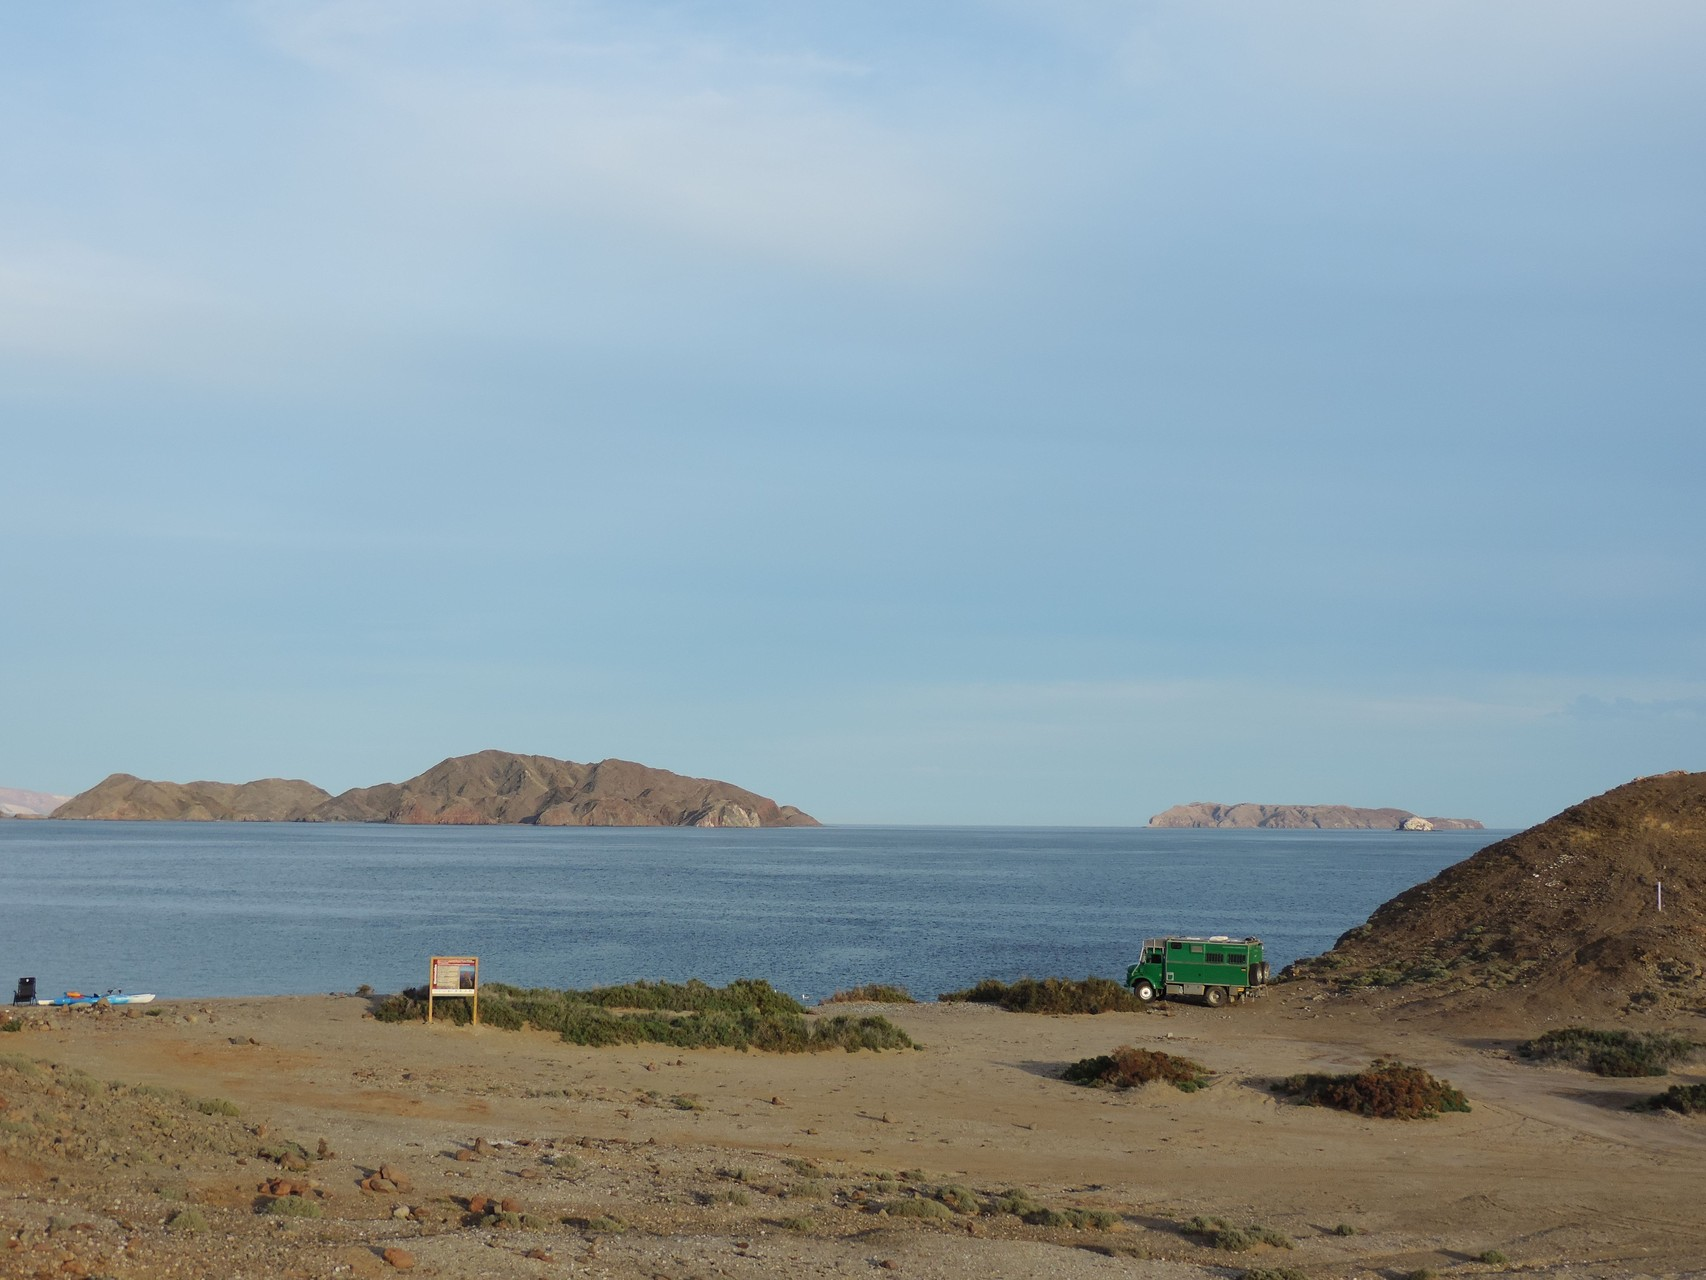 Playa Gringa in Bahia de Los Angeles